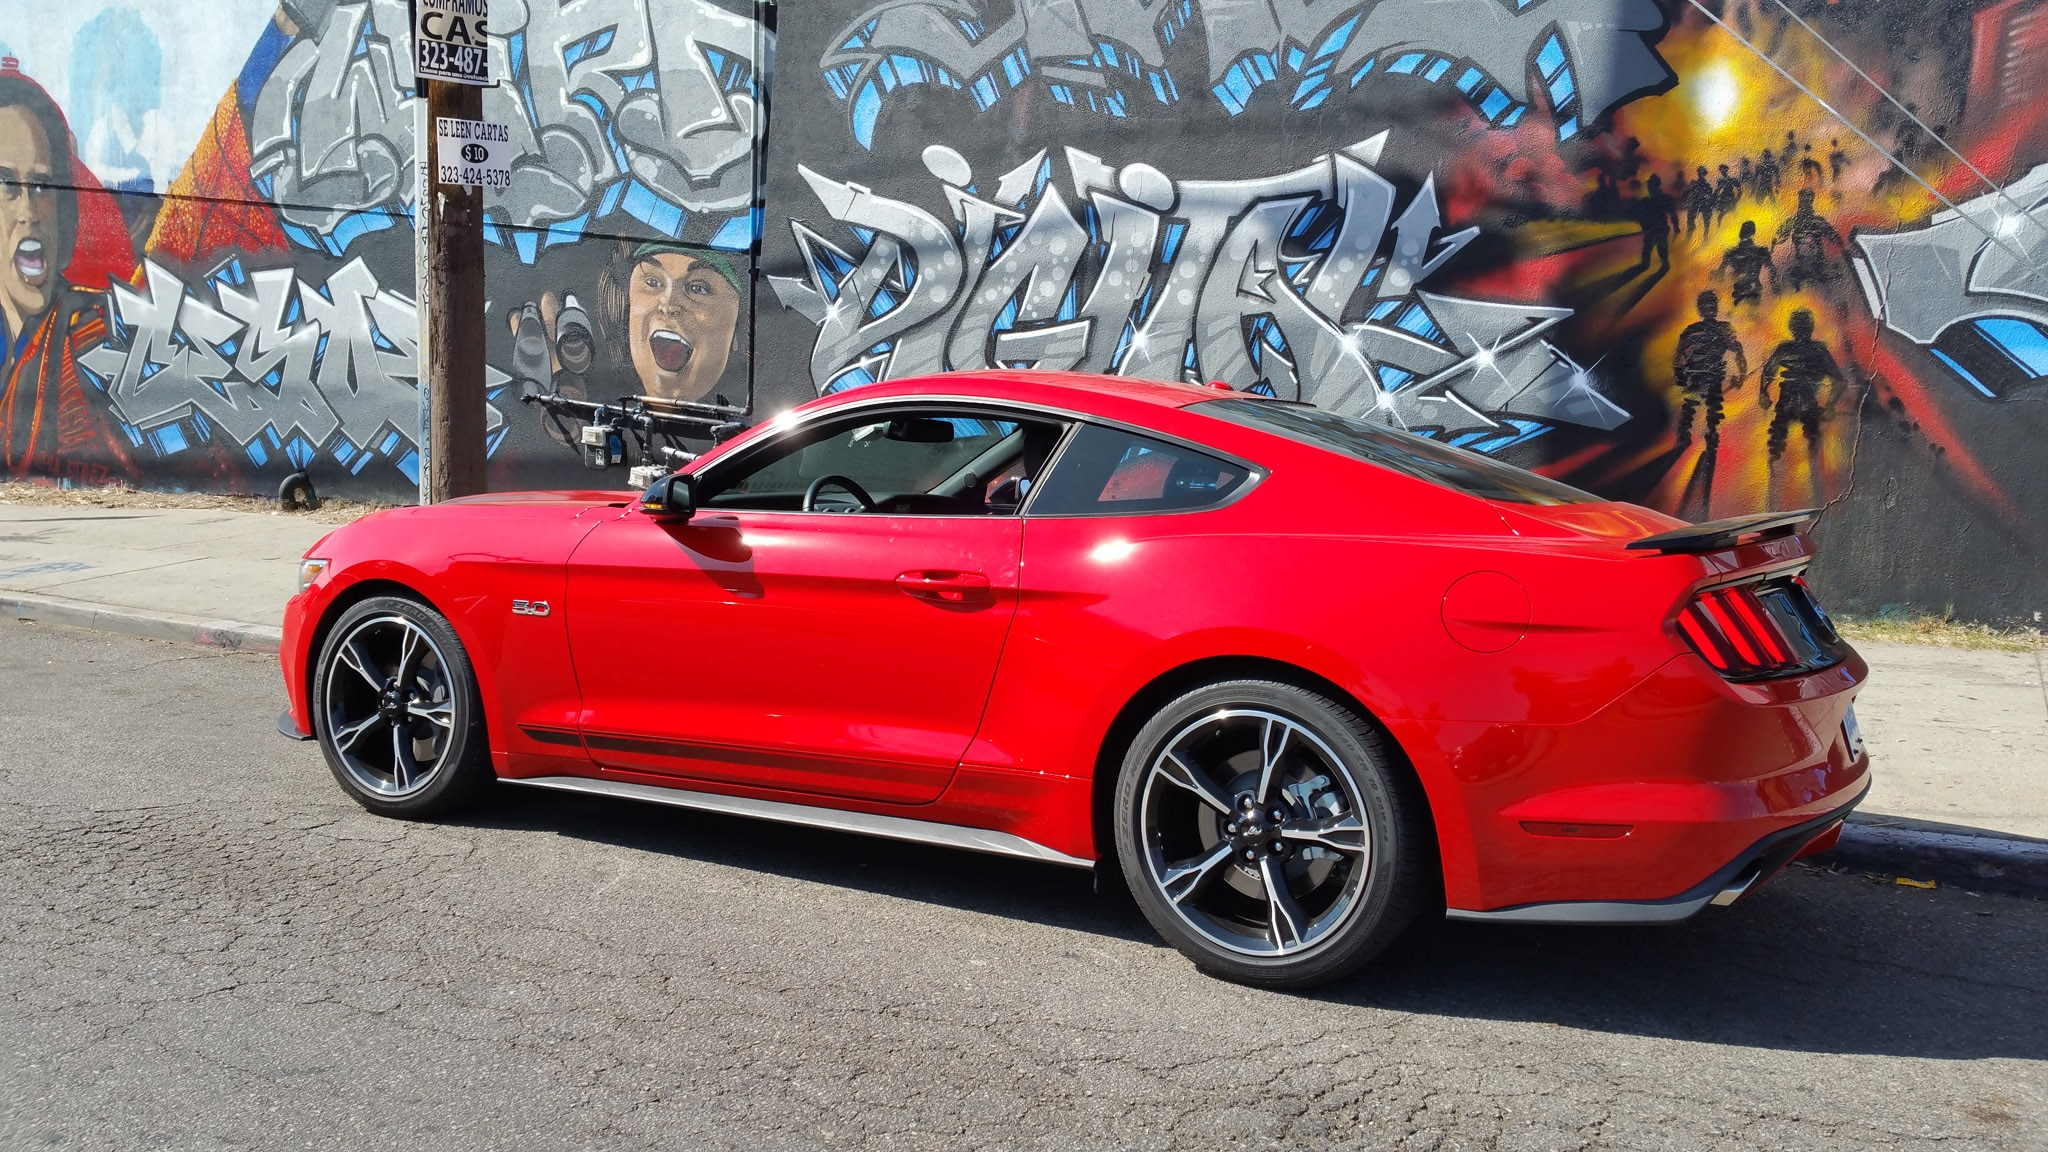 2016 Ford Mustang GT California_mural Side Street